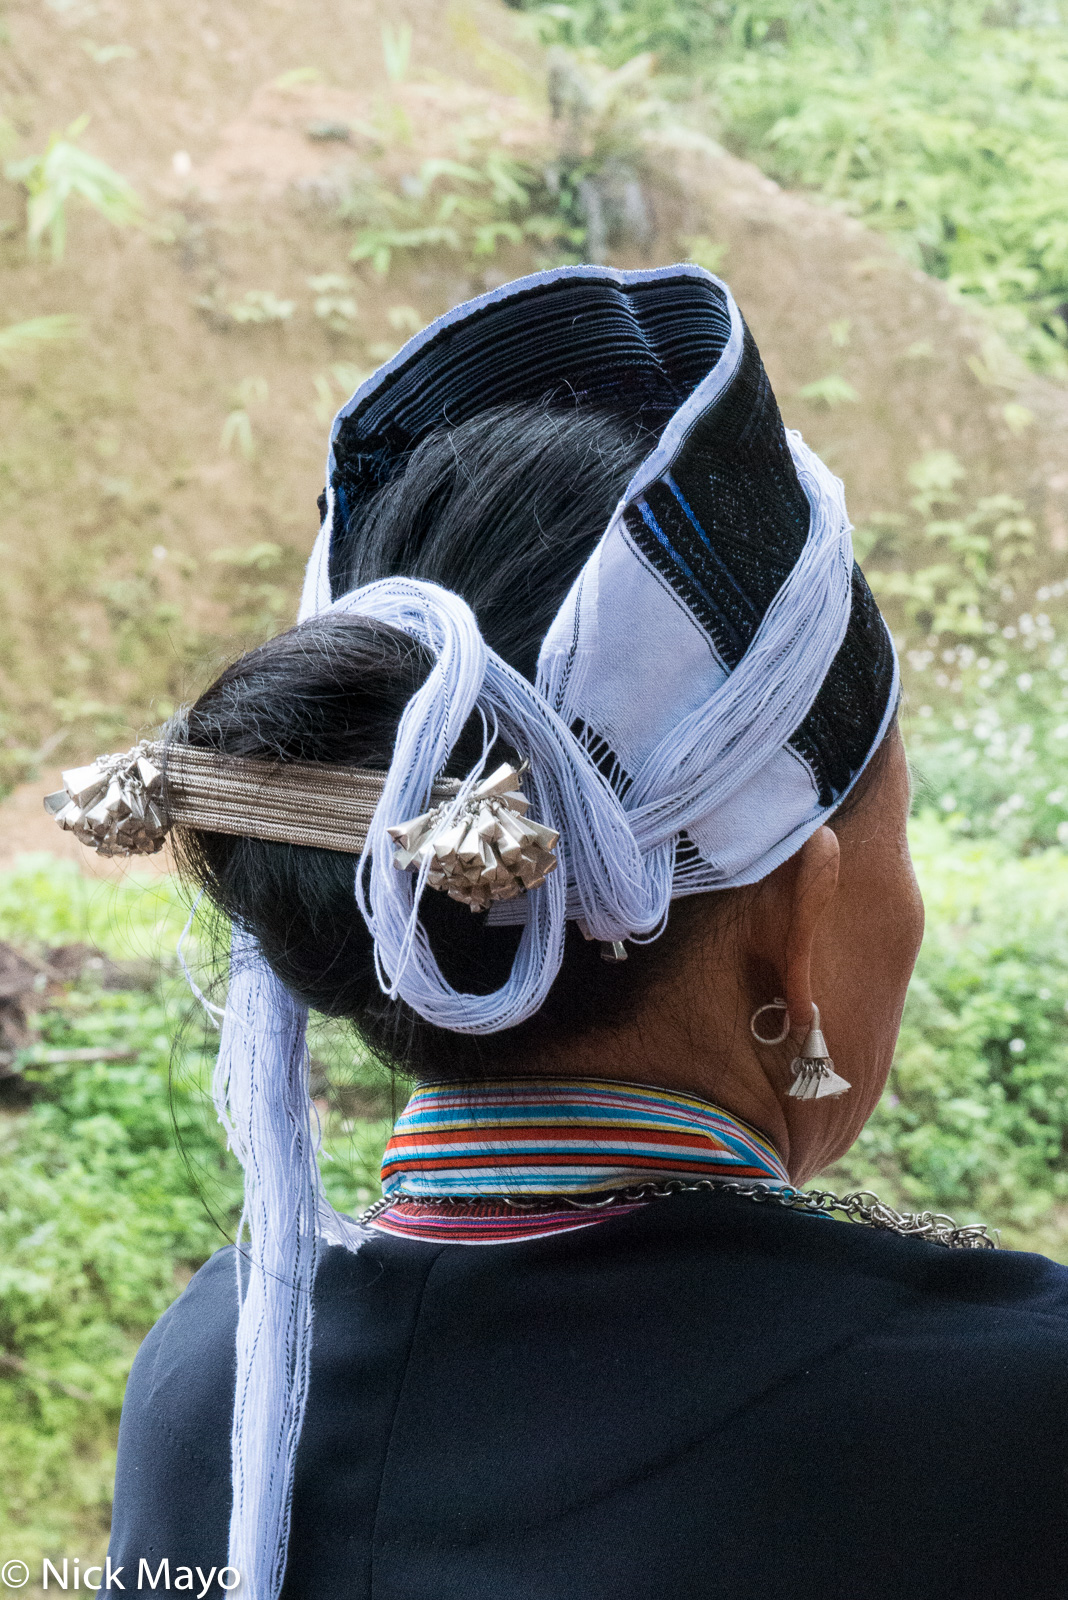 Earring, Ha Giang, Hair Piece, Vietnam, Wedding, Yao, photo